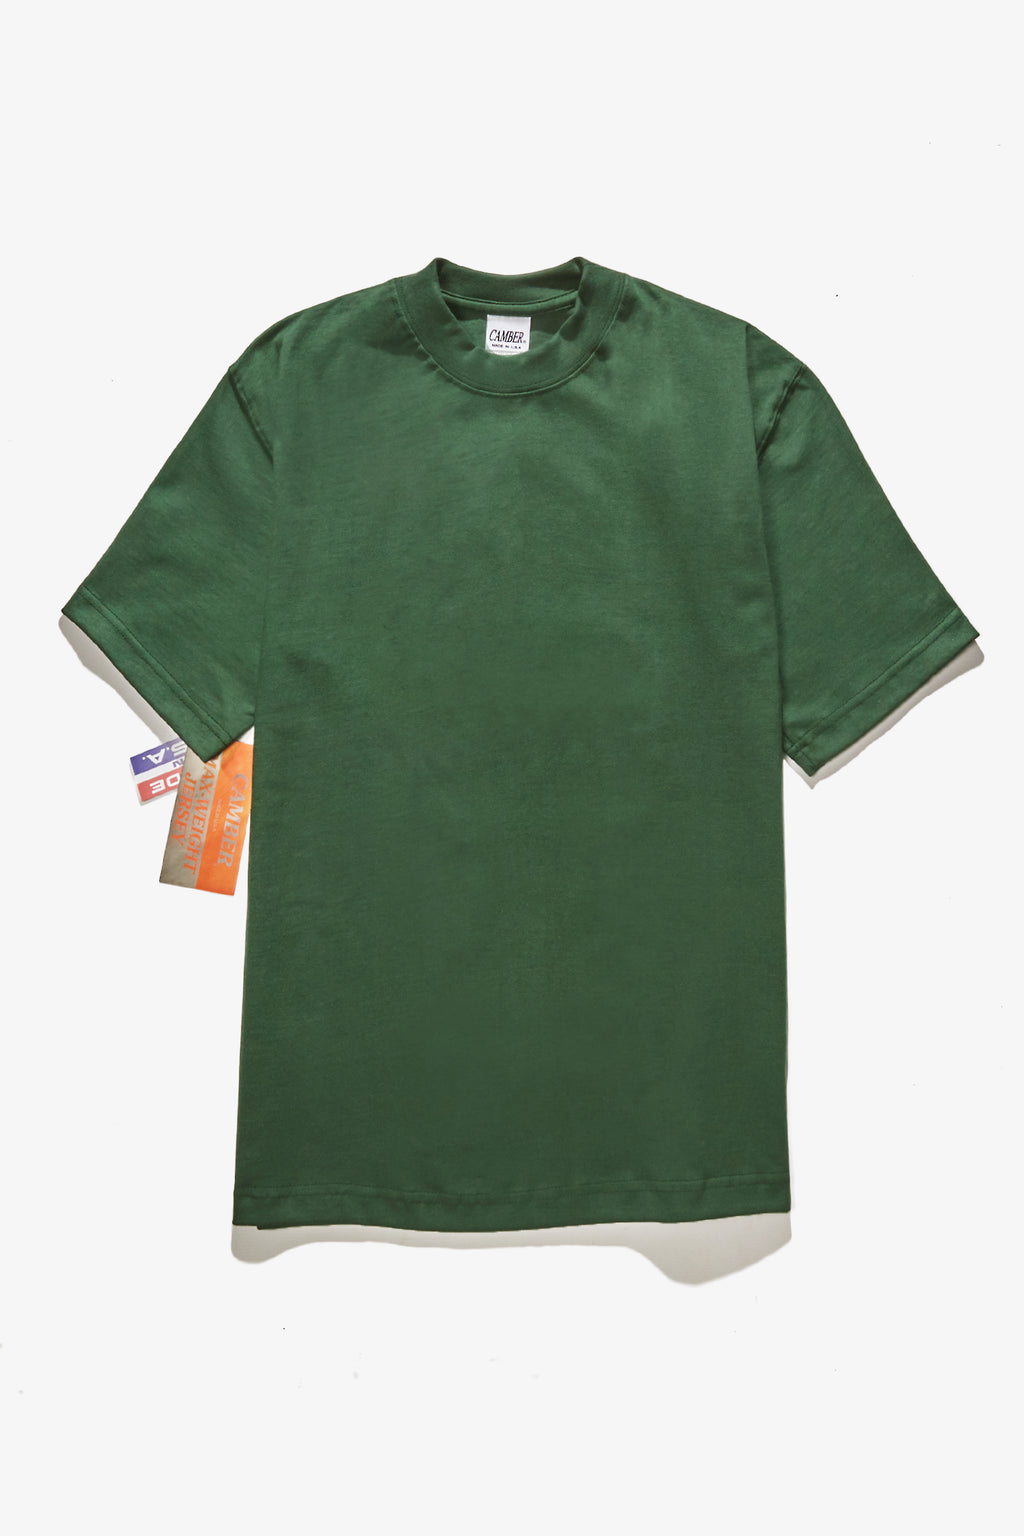 Camber USA - 301 8oz Tee - Forest Green